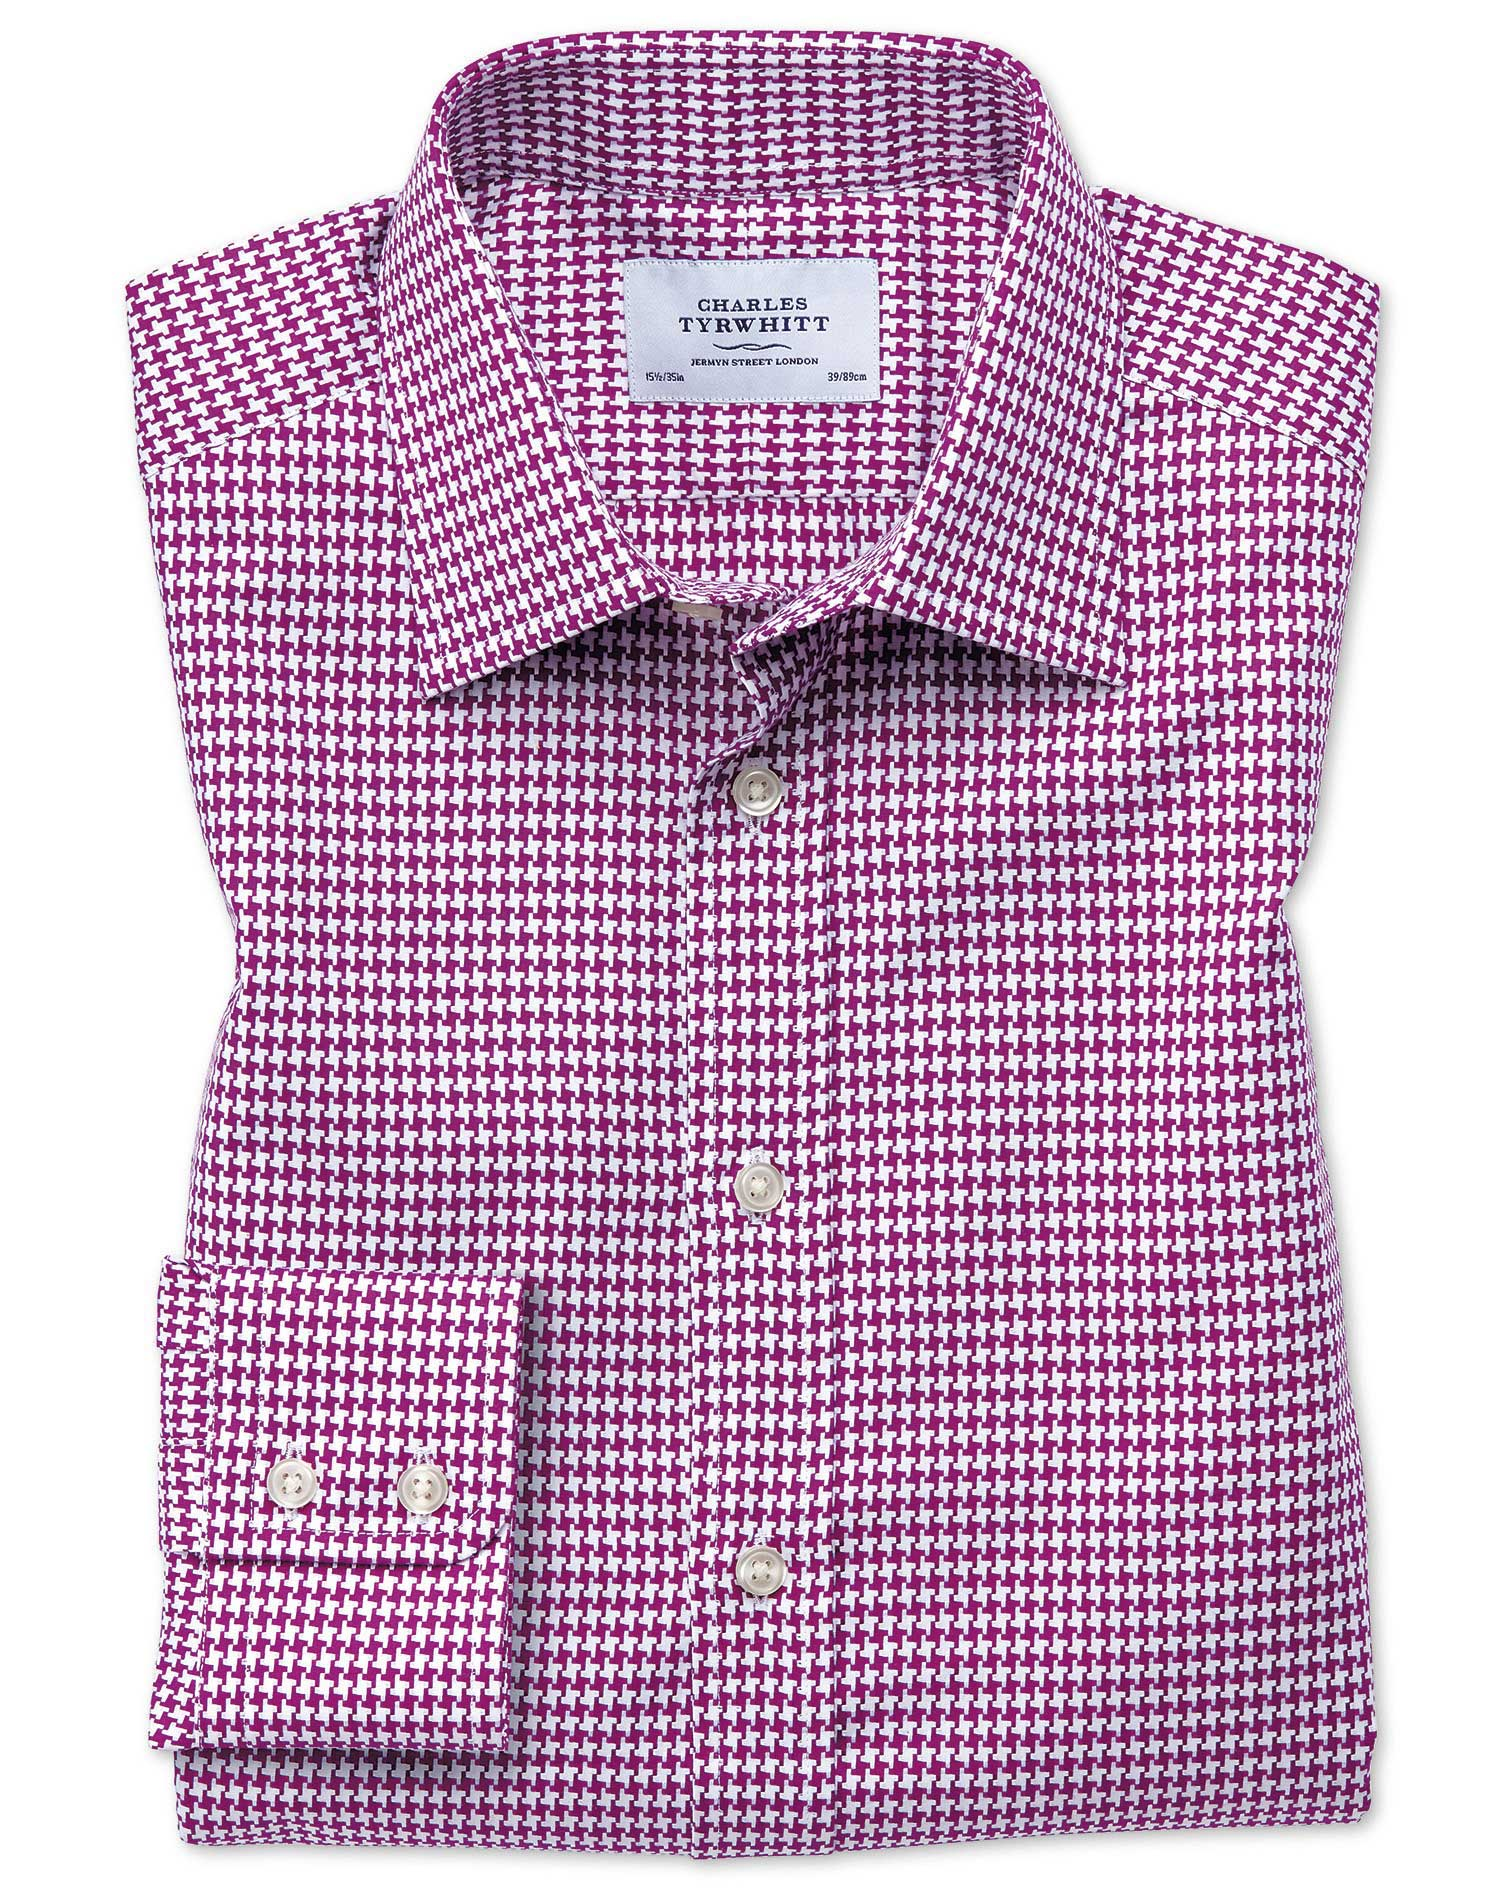 Slim Fit Large Puppytooth Berry Cotton Formal Shirt Single Cuff Size 16.5/34 by Charles Tyrwhitt